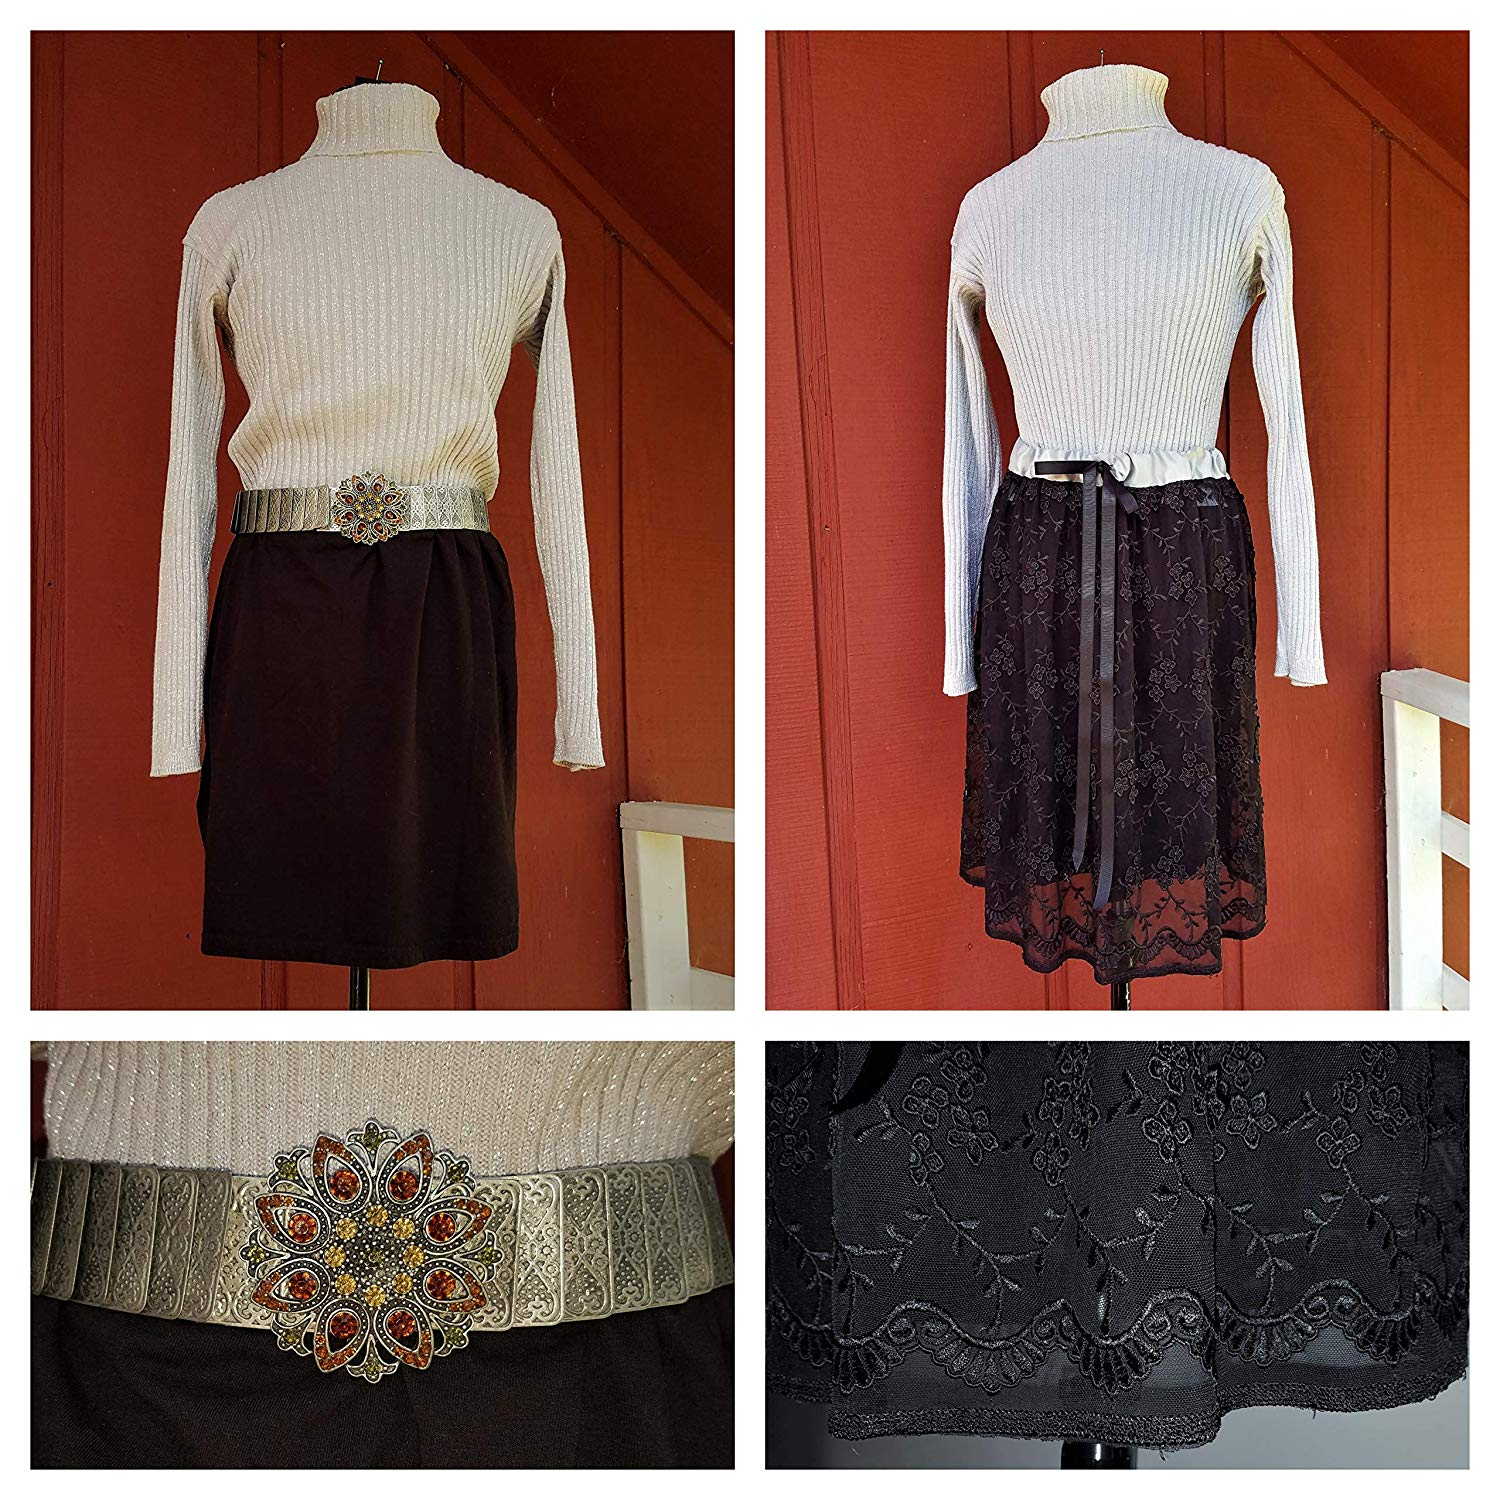 9a2de36d3ae Get Quotations · Woman s Black and Silver Sweater Dress w additional Black  Lace Skirt and Stunning Belt.